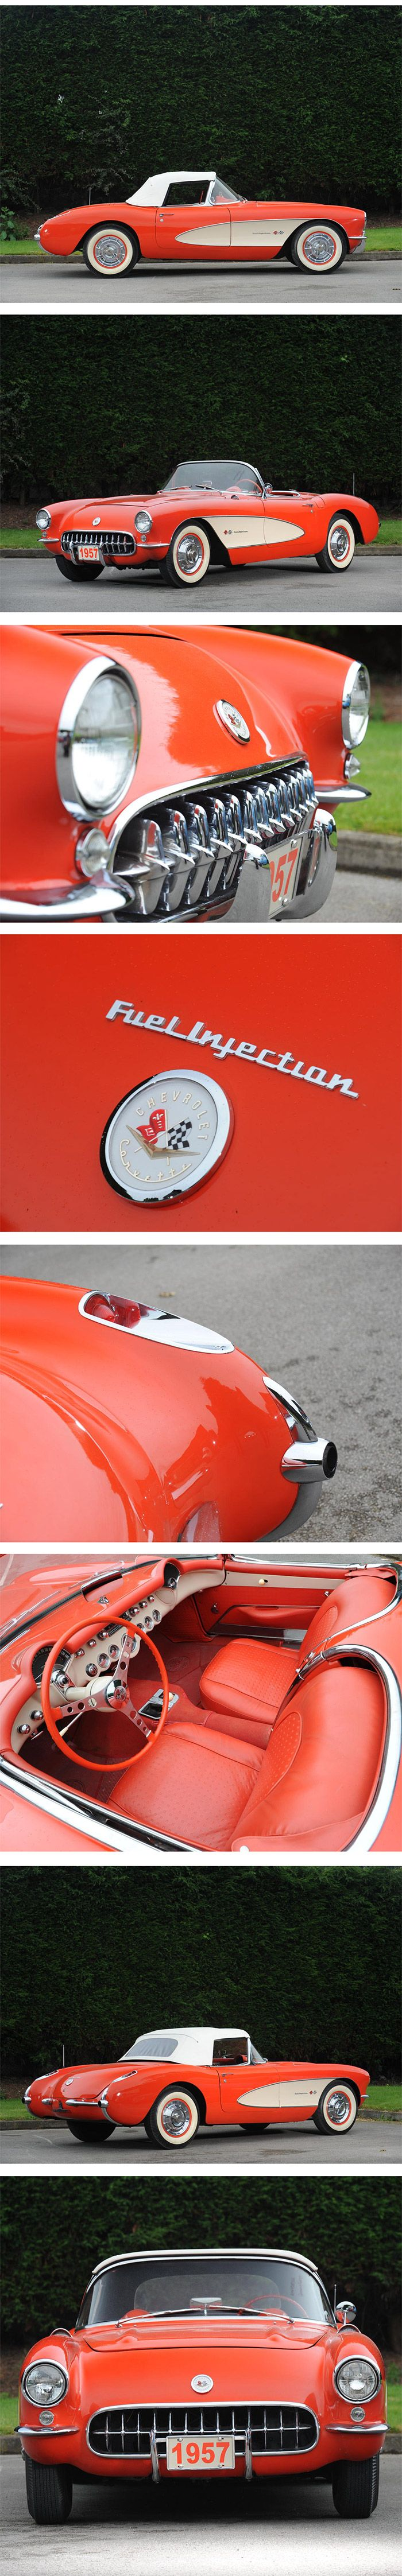 1957 Chevrolet Corvette Roadster The Old Ones Are So Much Cooler Chevrolet Corvette Corvette Classic Cars